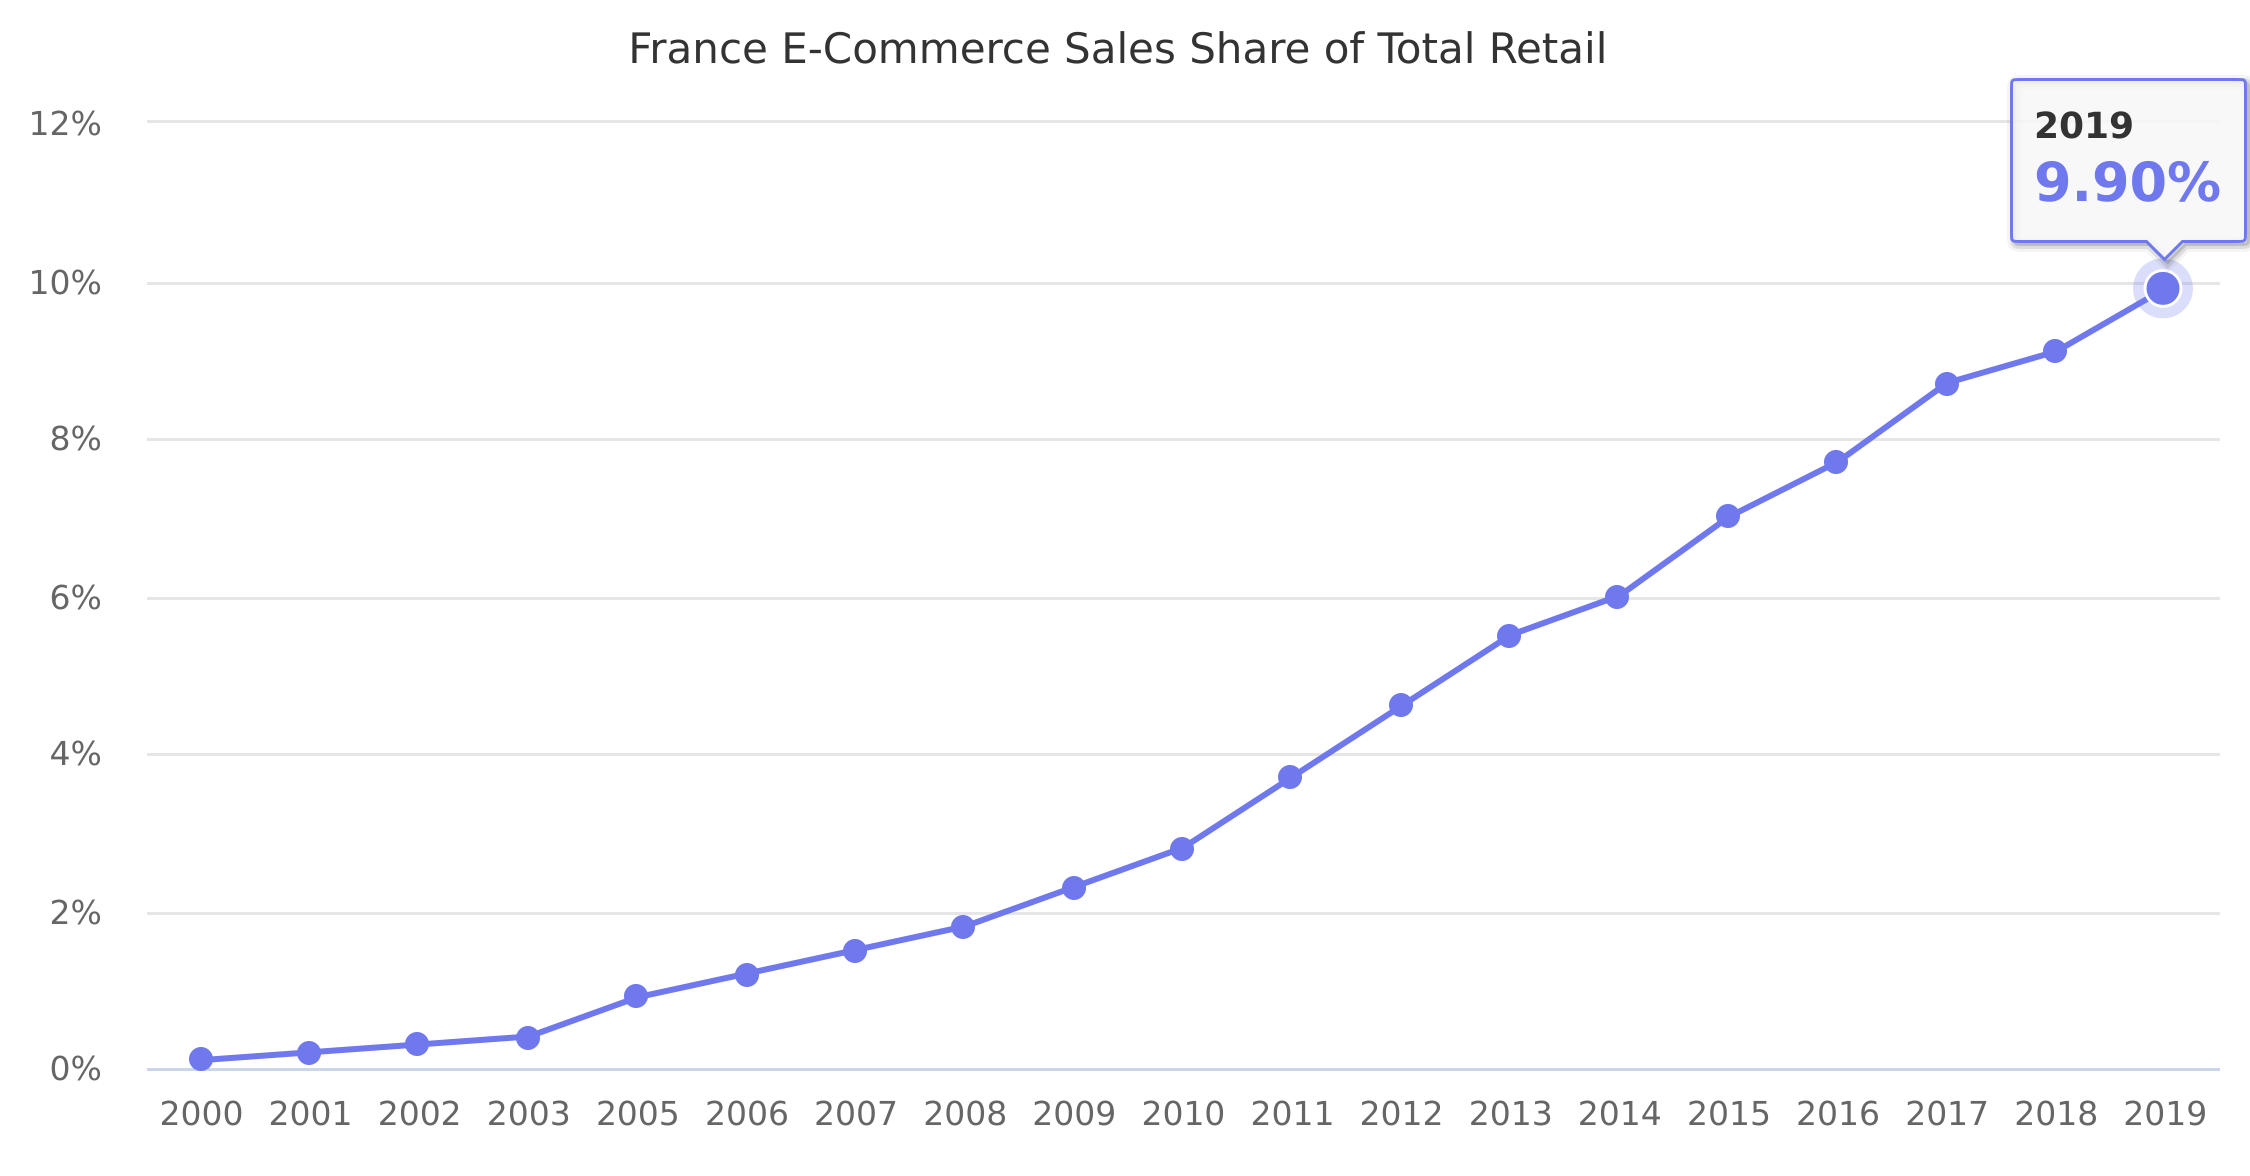 France E-Commerce Sales Share of Total Retail 2000-2015